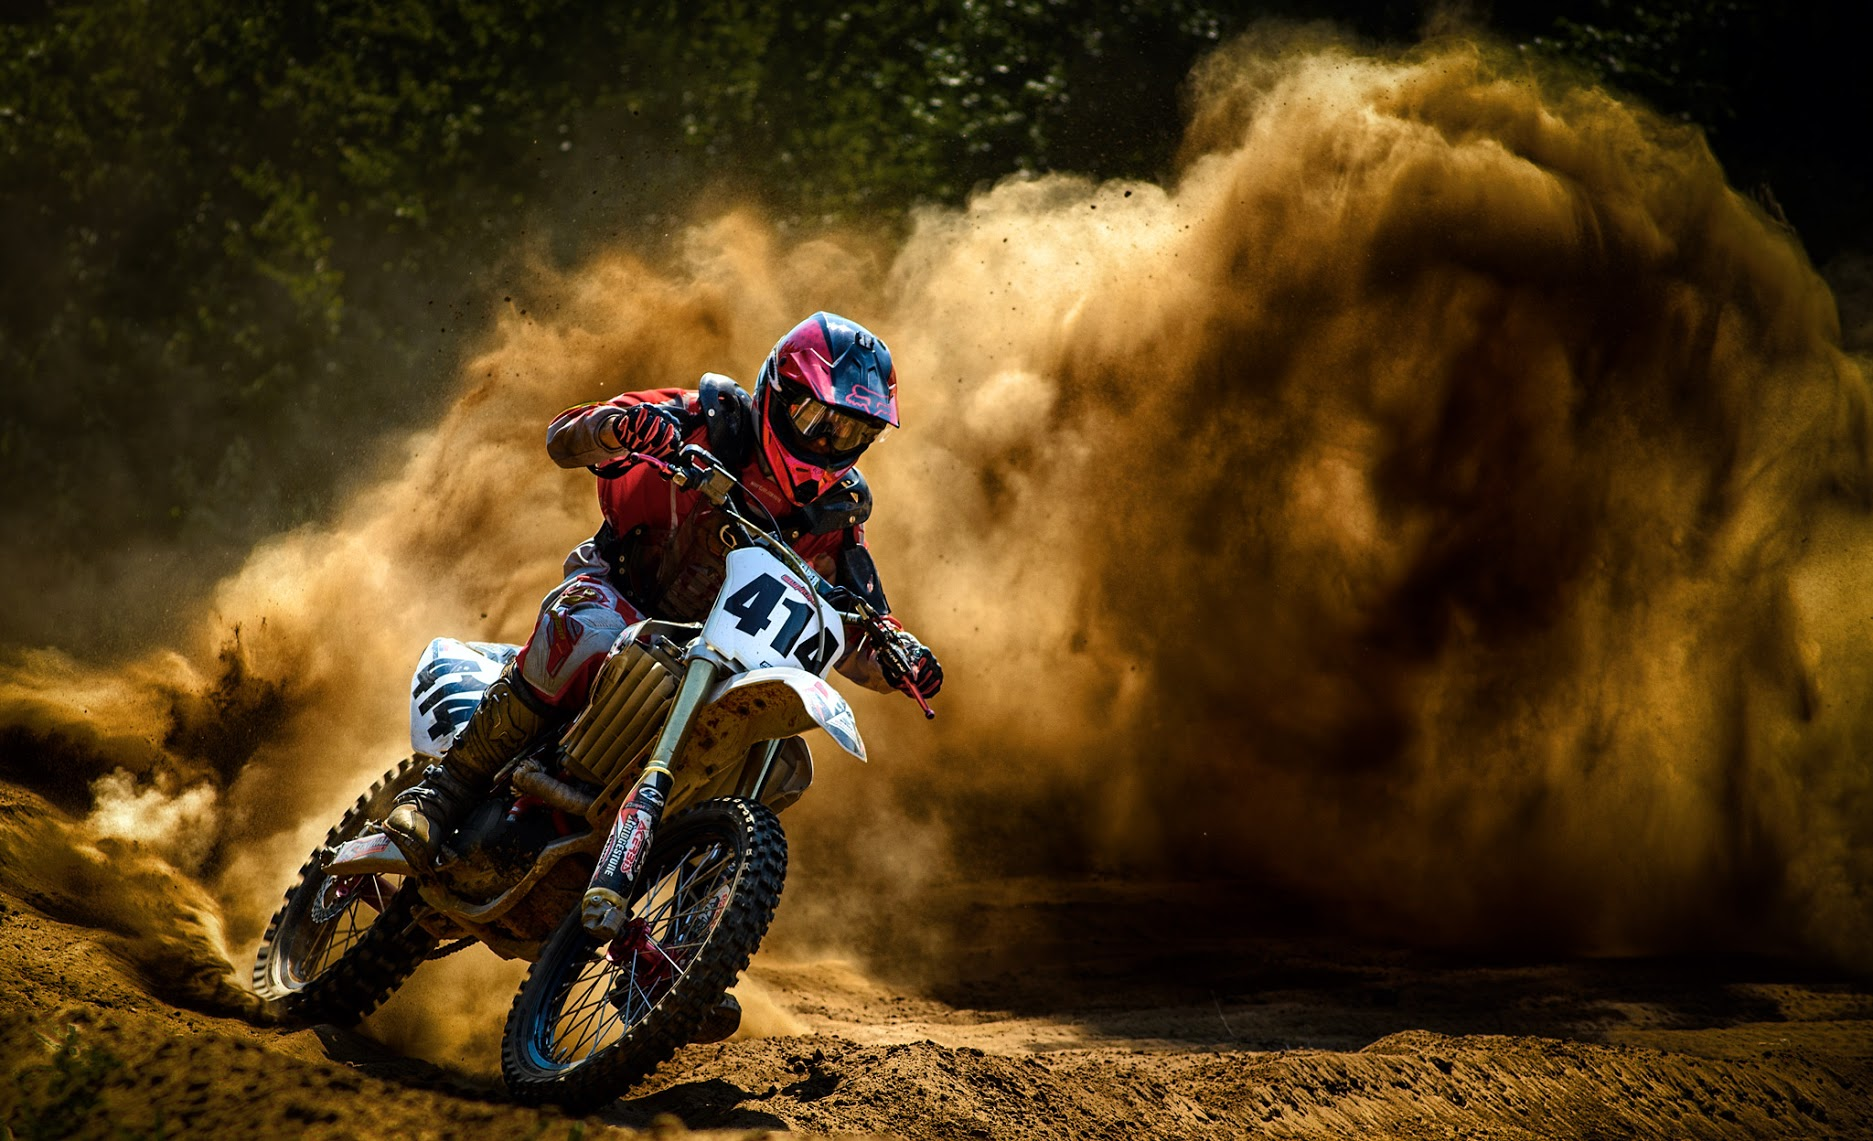 dirt bike wallpaper related keywords suggestions dirt